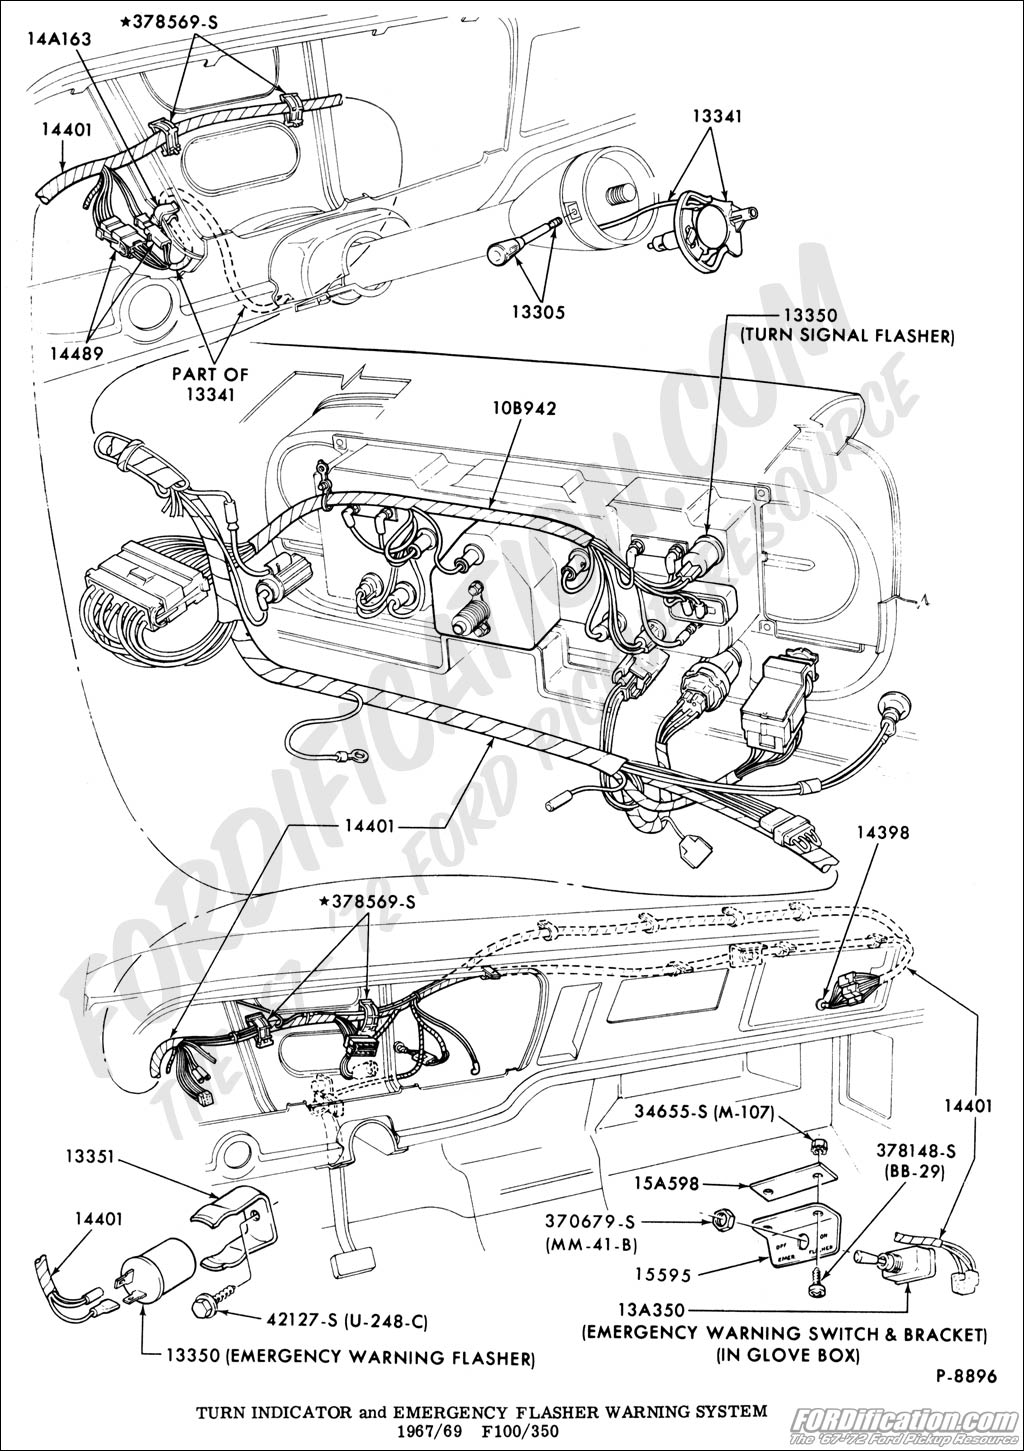 switch wiring diagram besides 1967 ford mustang ignition switch wiring